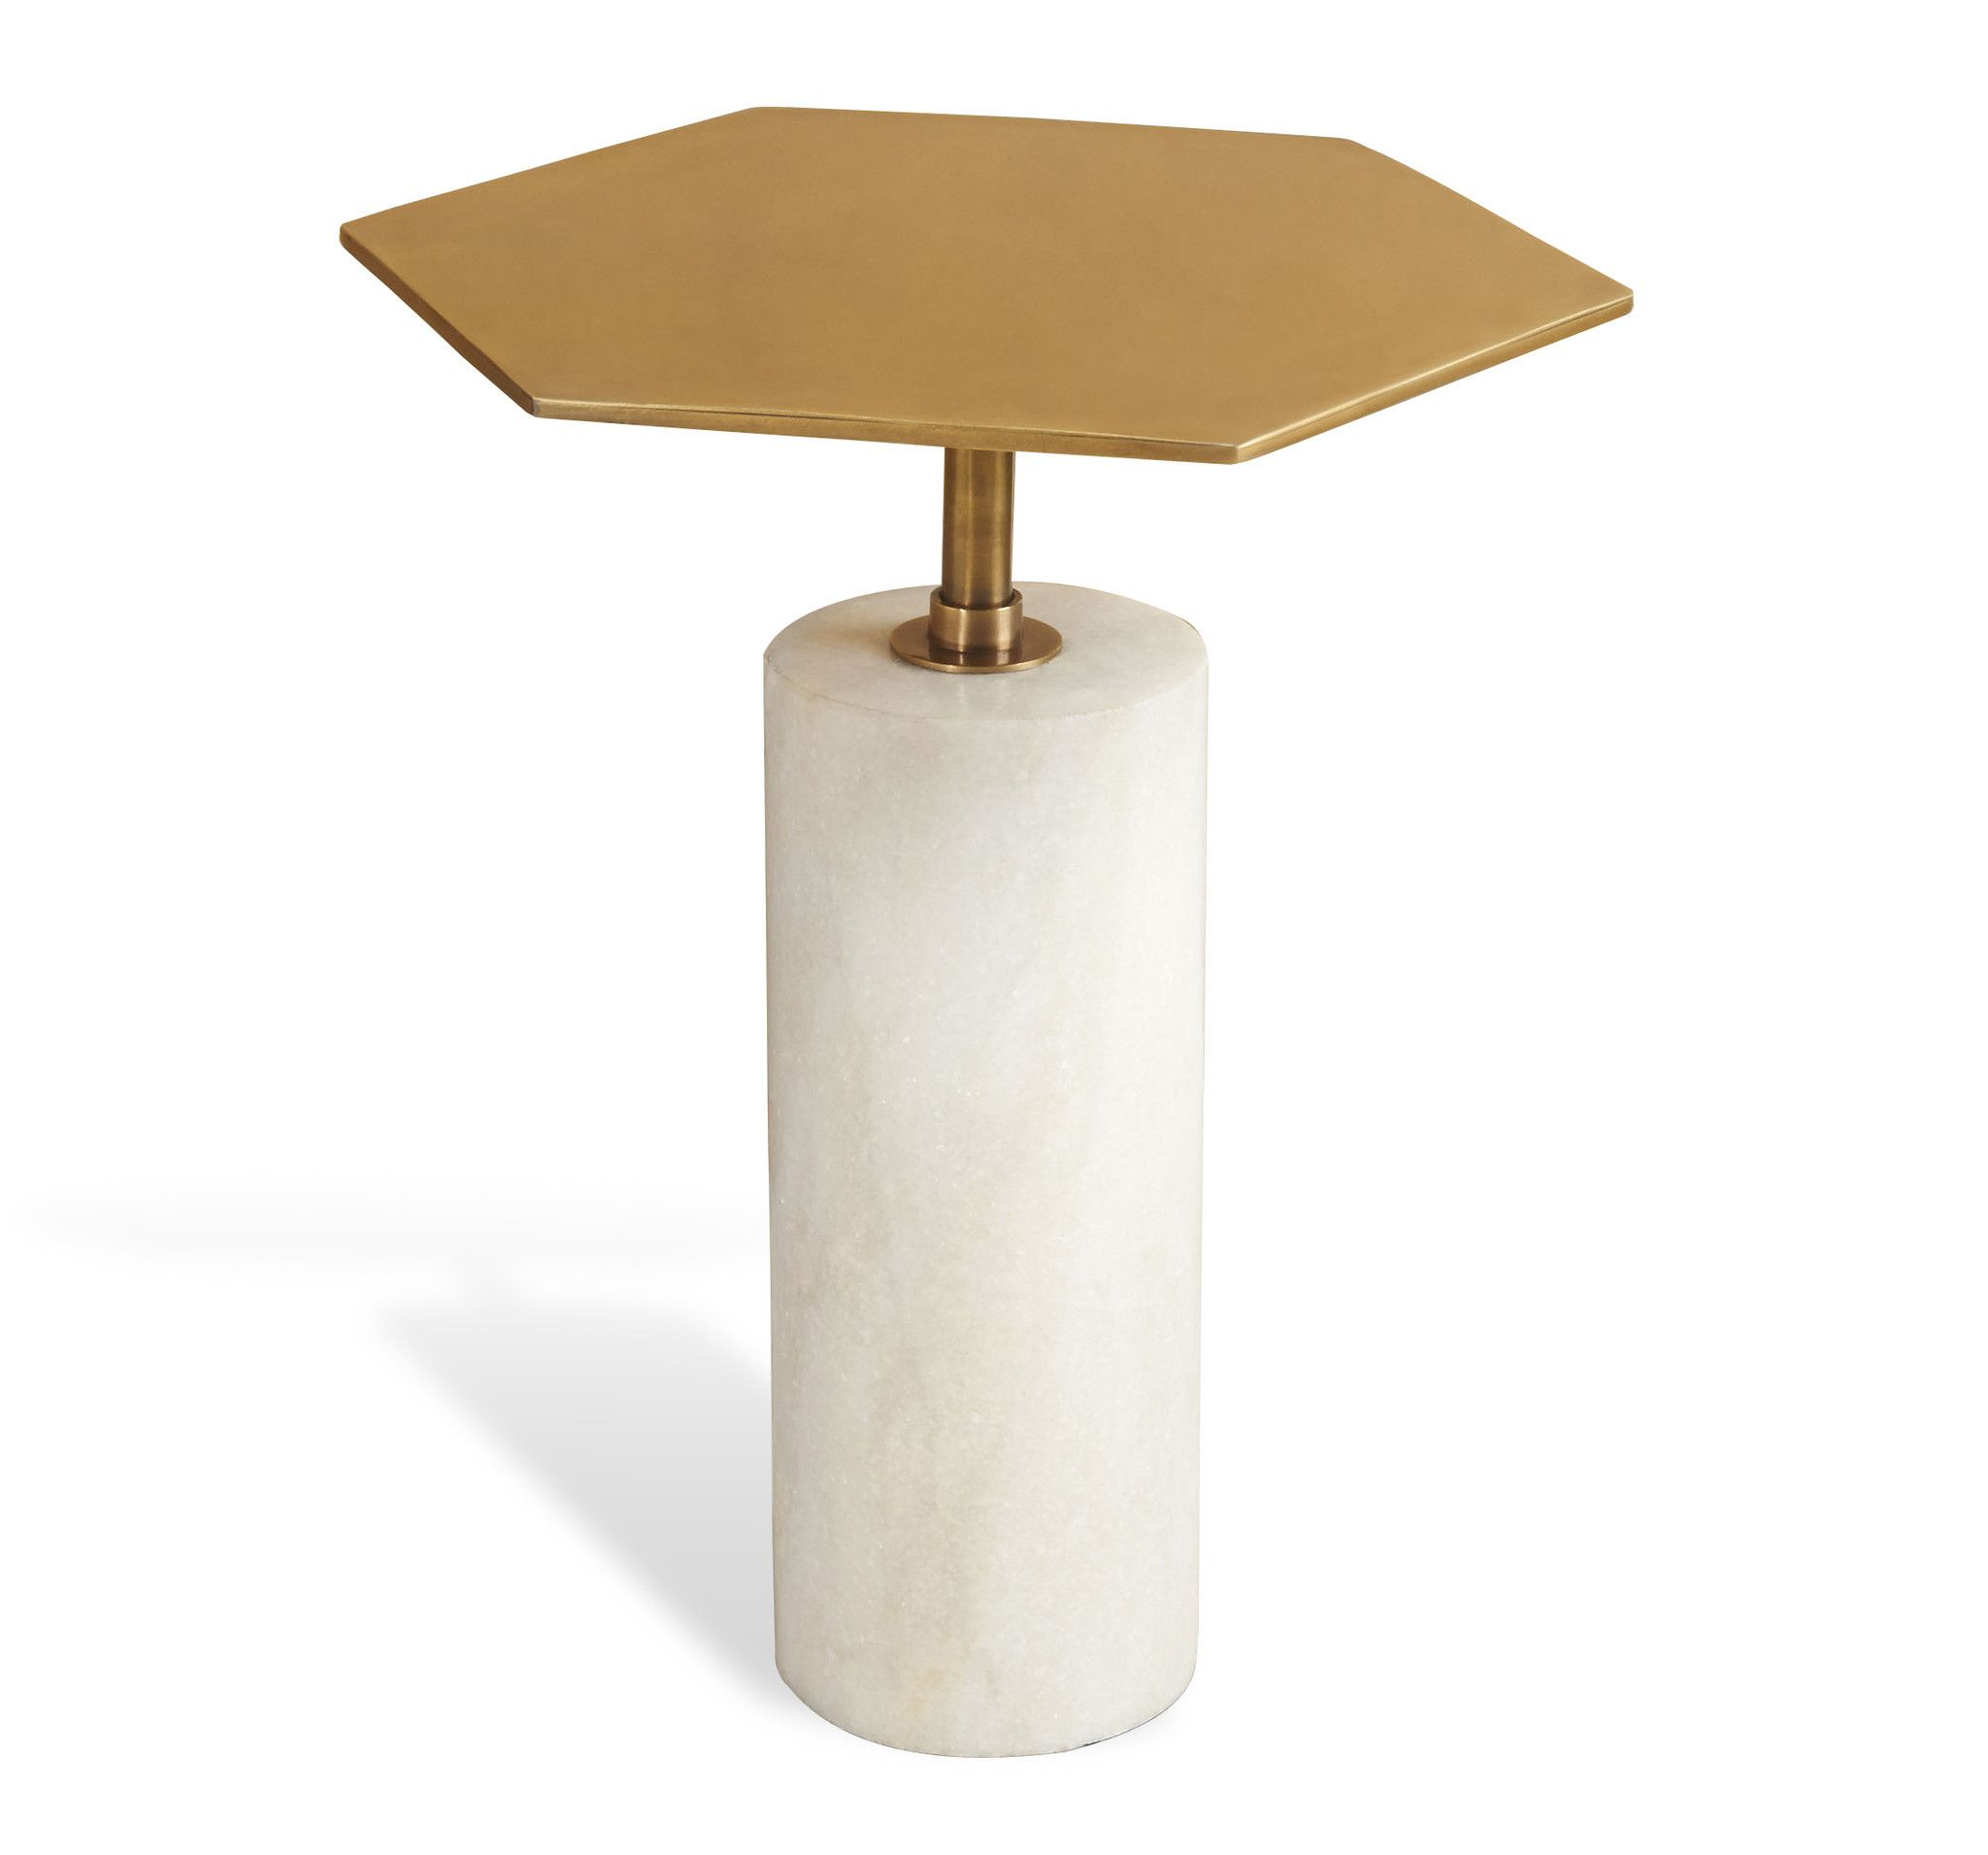 High Quality $675 Beck Stone Side Table In Antique Brass Design By Interlude Home